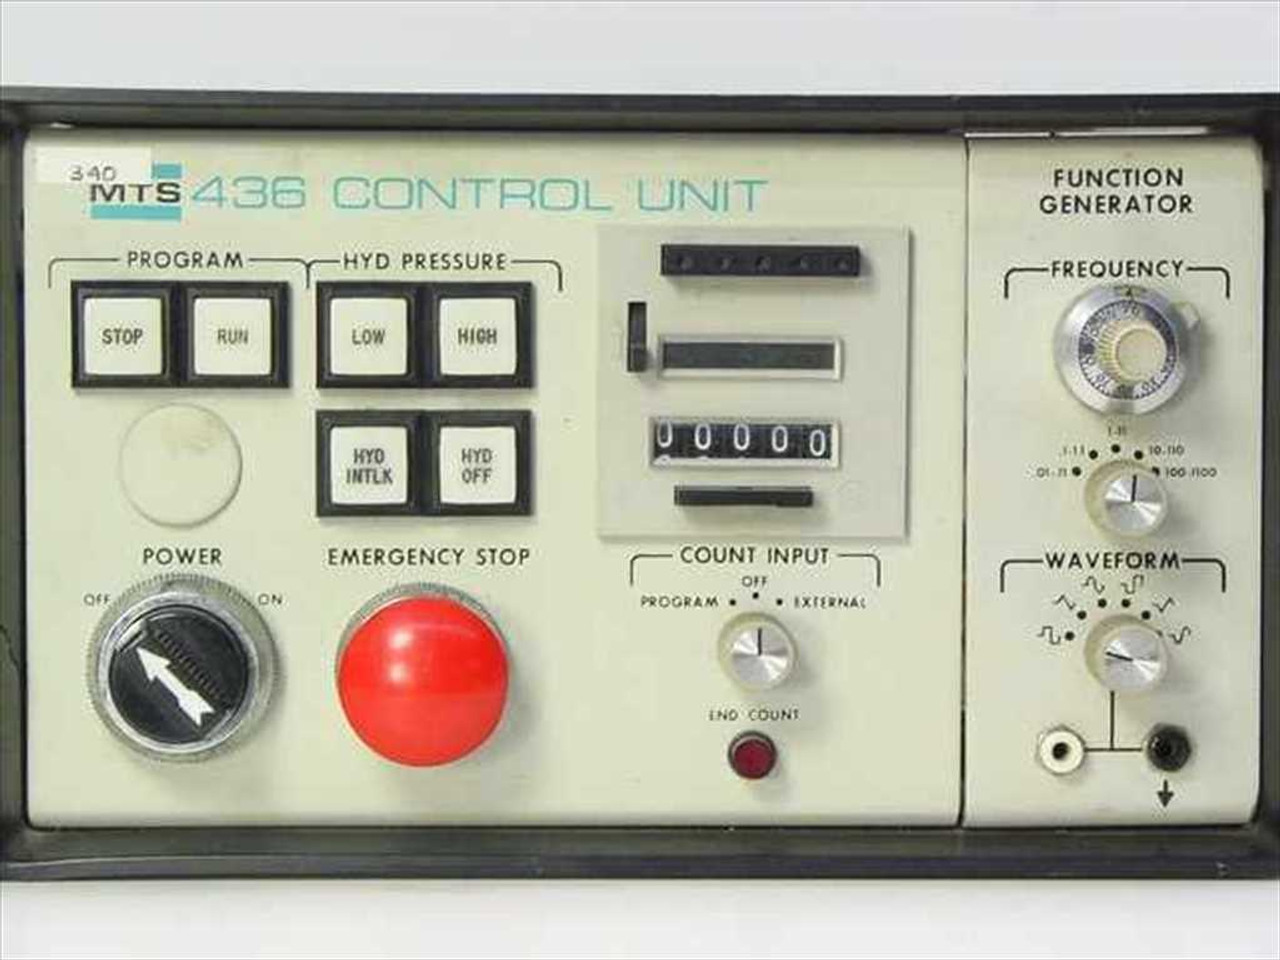 Mts 43611 Analog Control Unit Function Generator Pressure